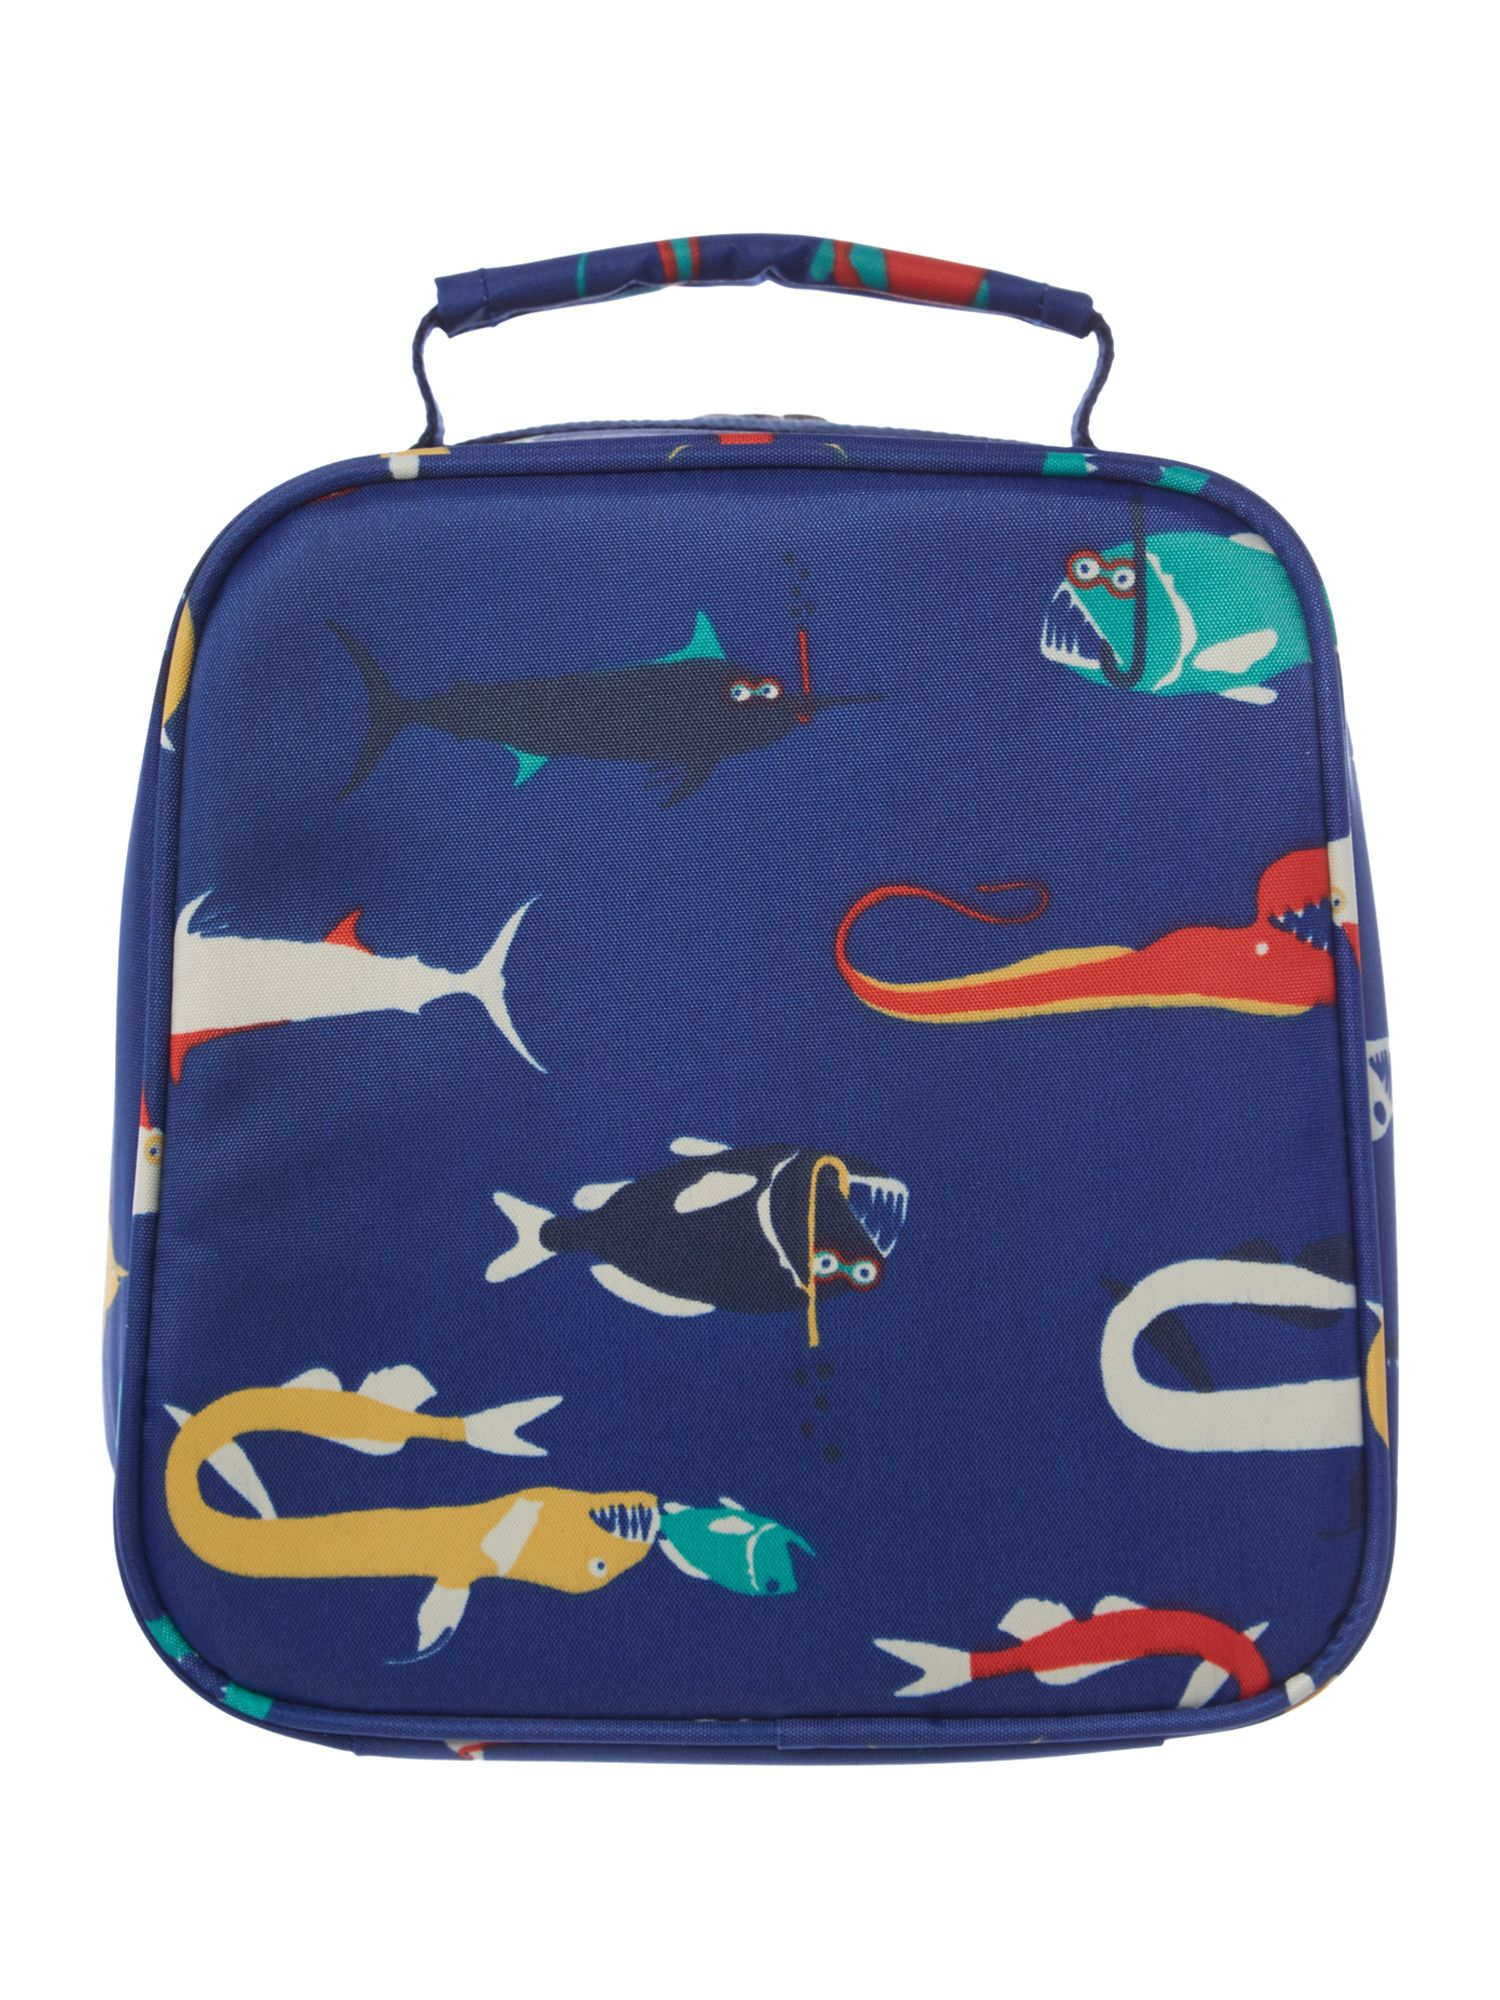 Boys fish print lunch box